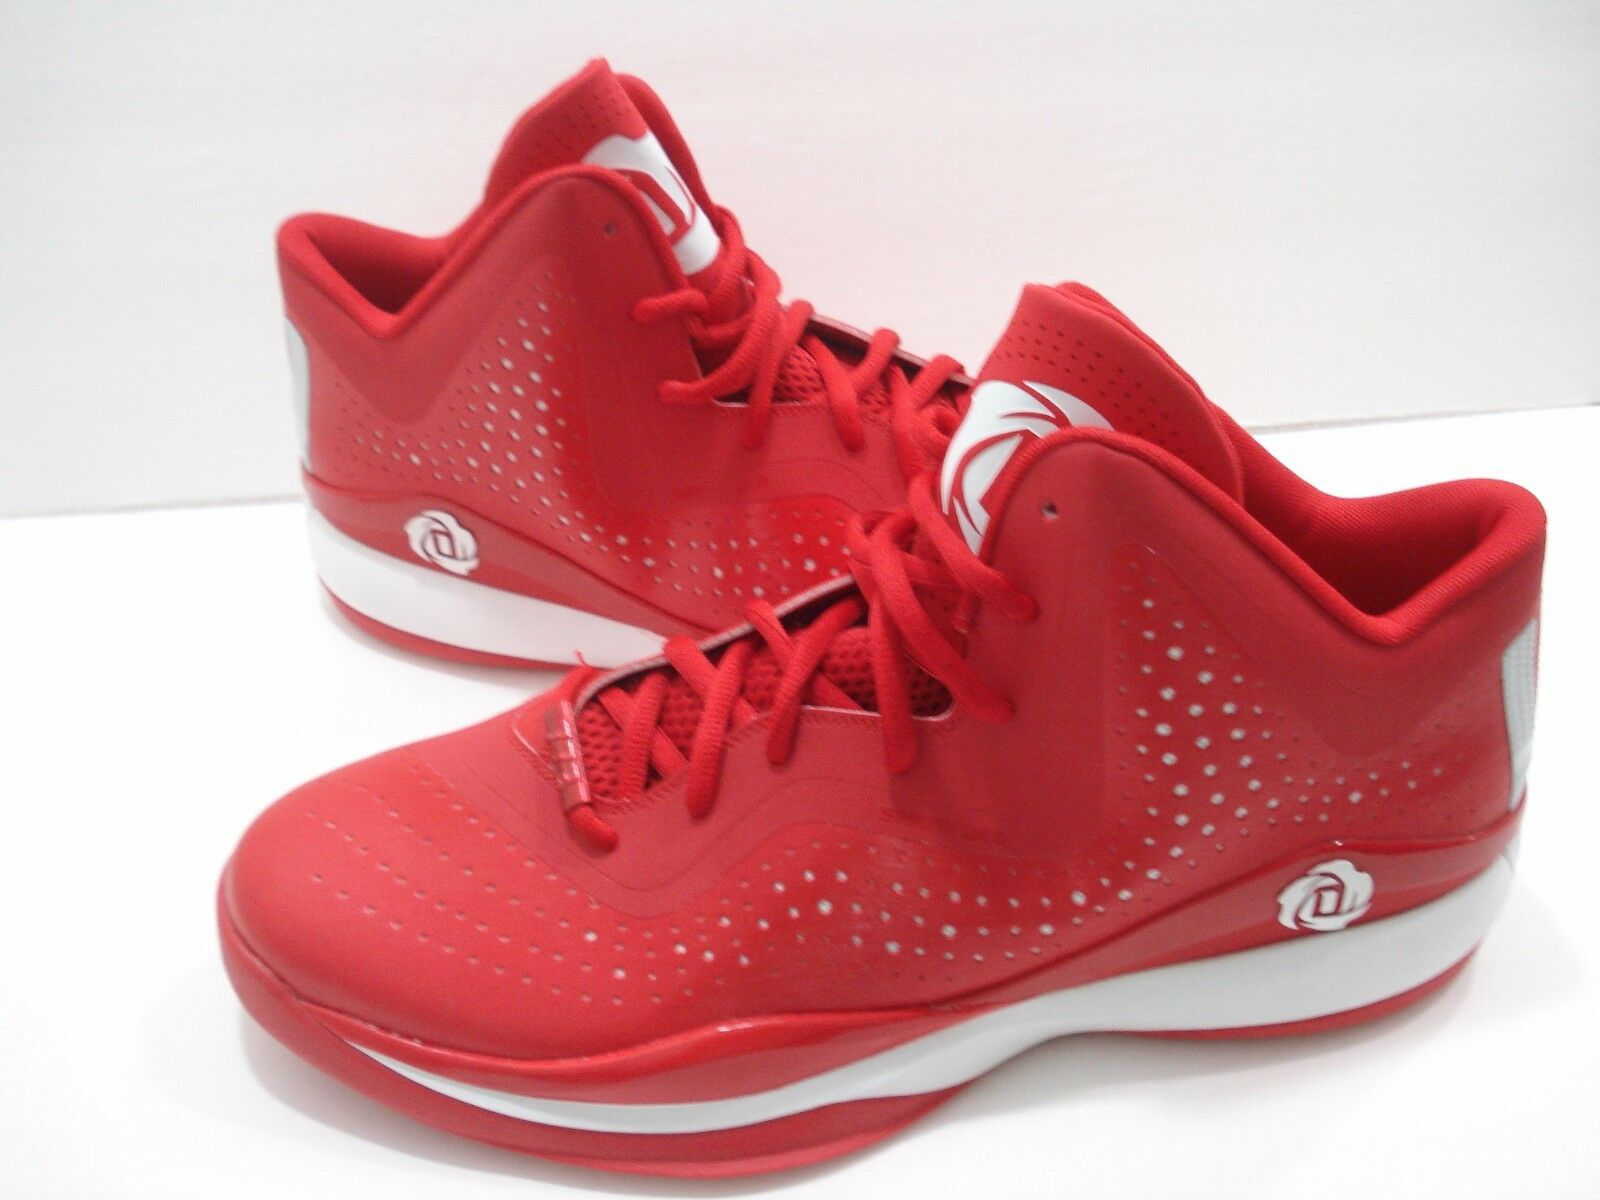 Adidas SM D Rose 773 III S84348 Shoes Derrick Red Men's Basketball Shoes S84348 Size 17 NEW 3243af